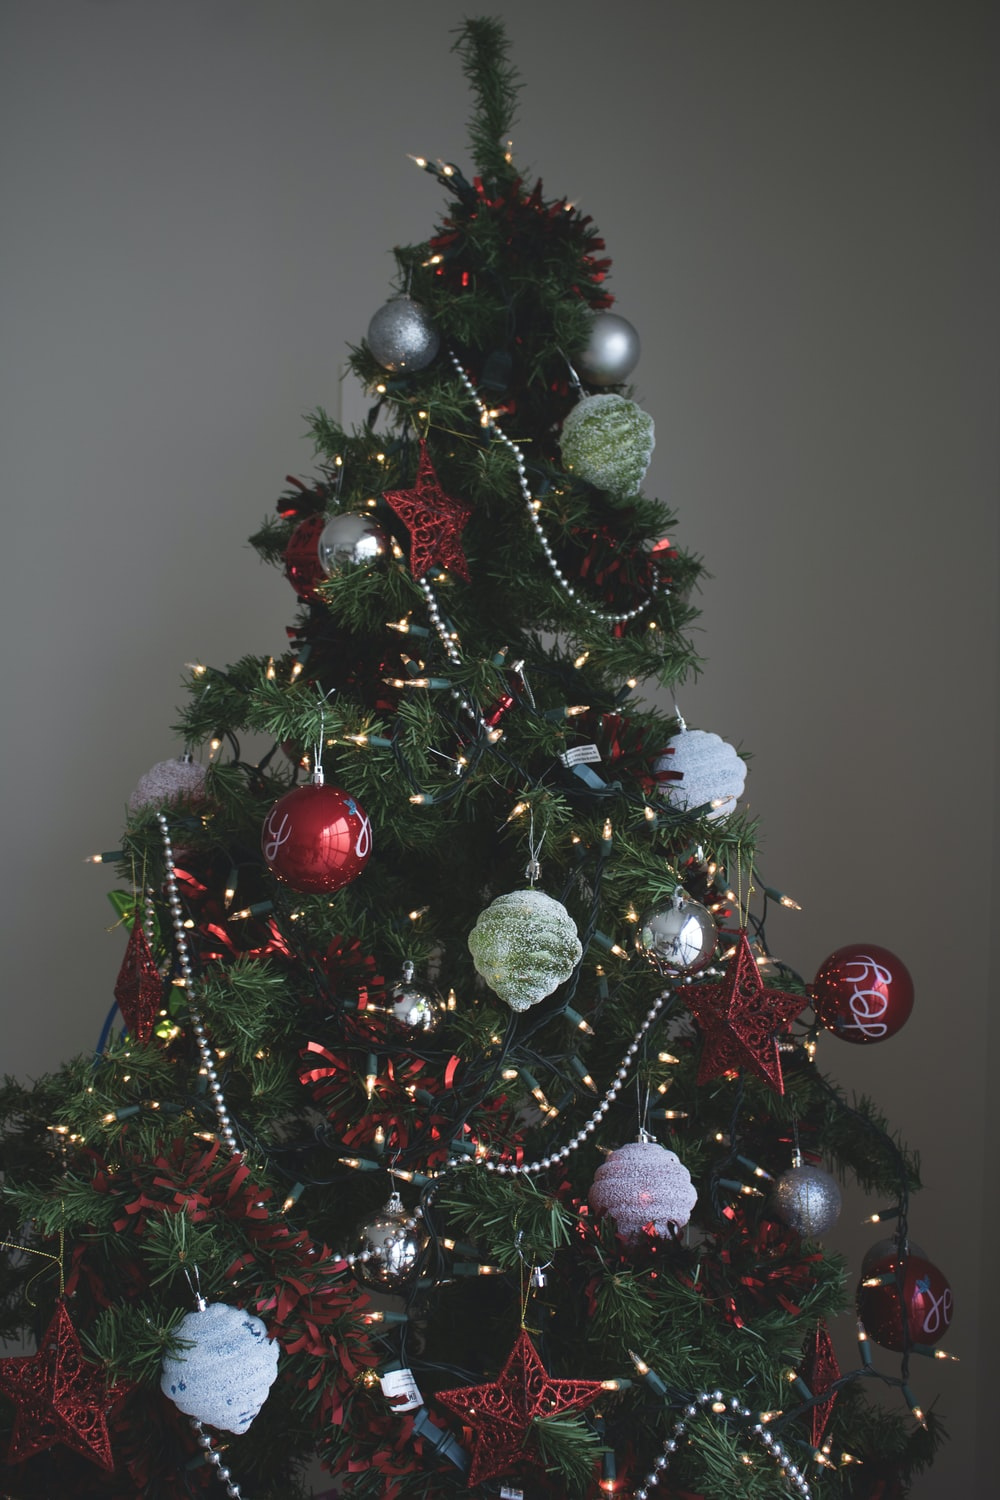 Christmas tree and Christmas baubles